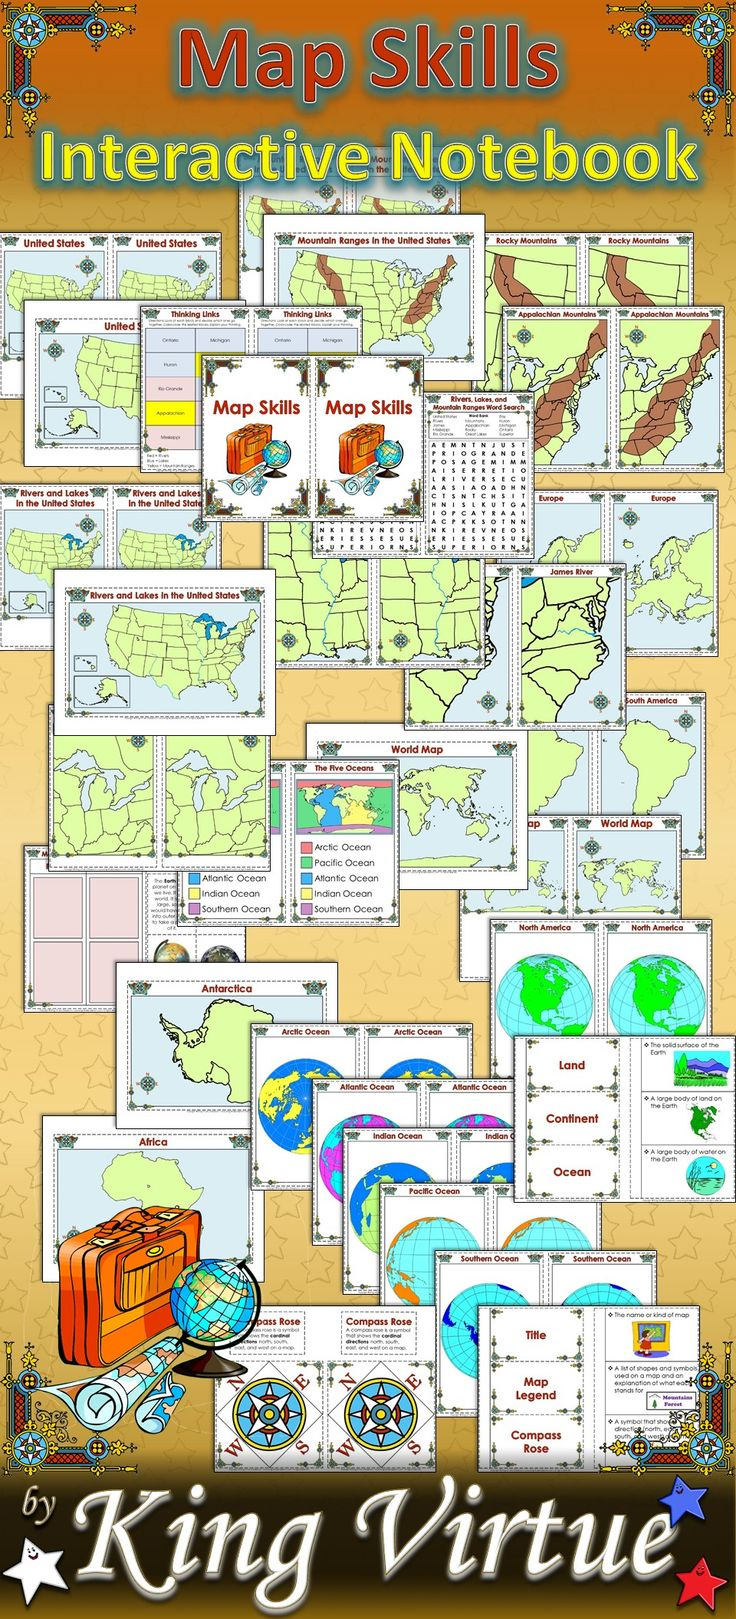 Map Skills Interactive Notebook By King Virtue S Classroom This Map Skills Interactive Notebook Covers The